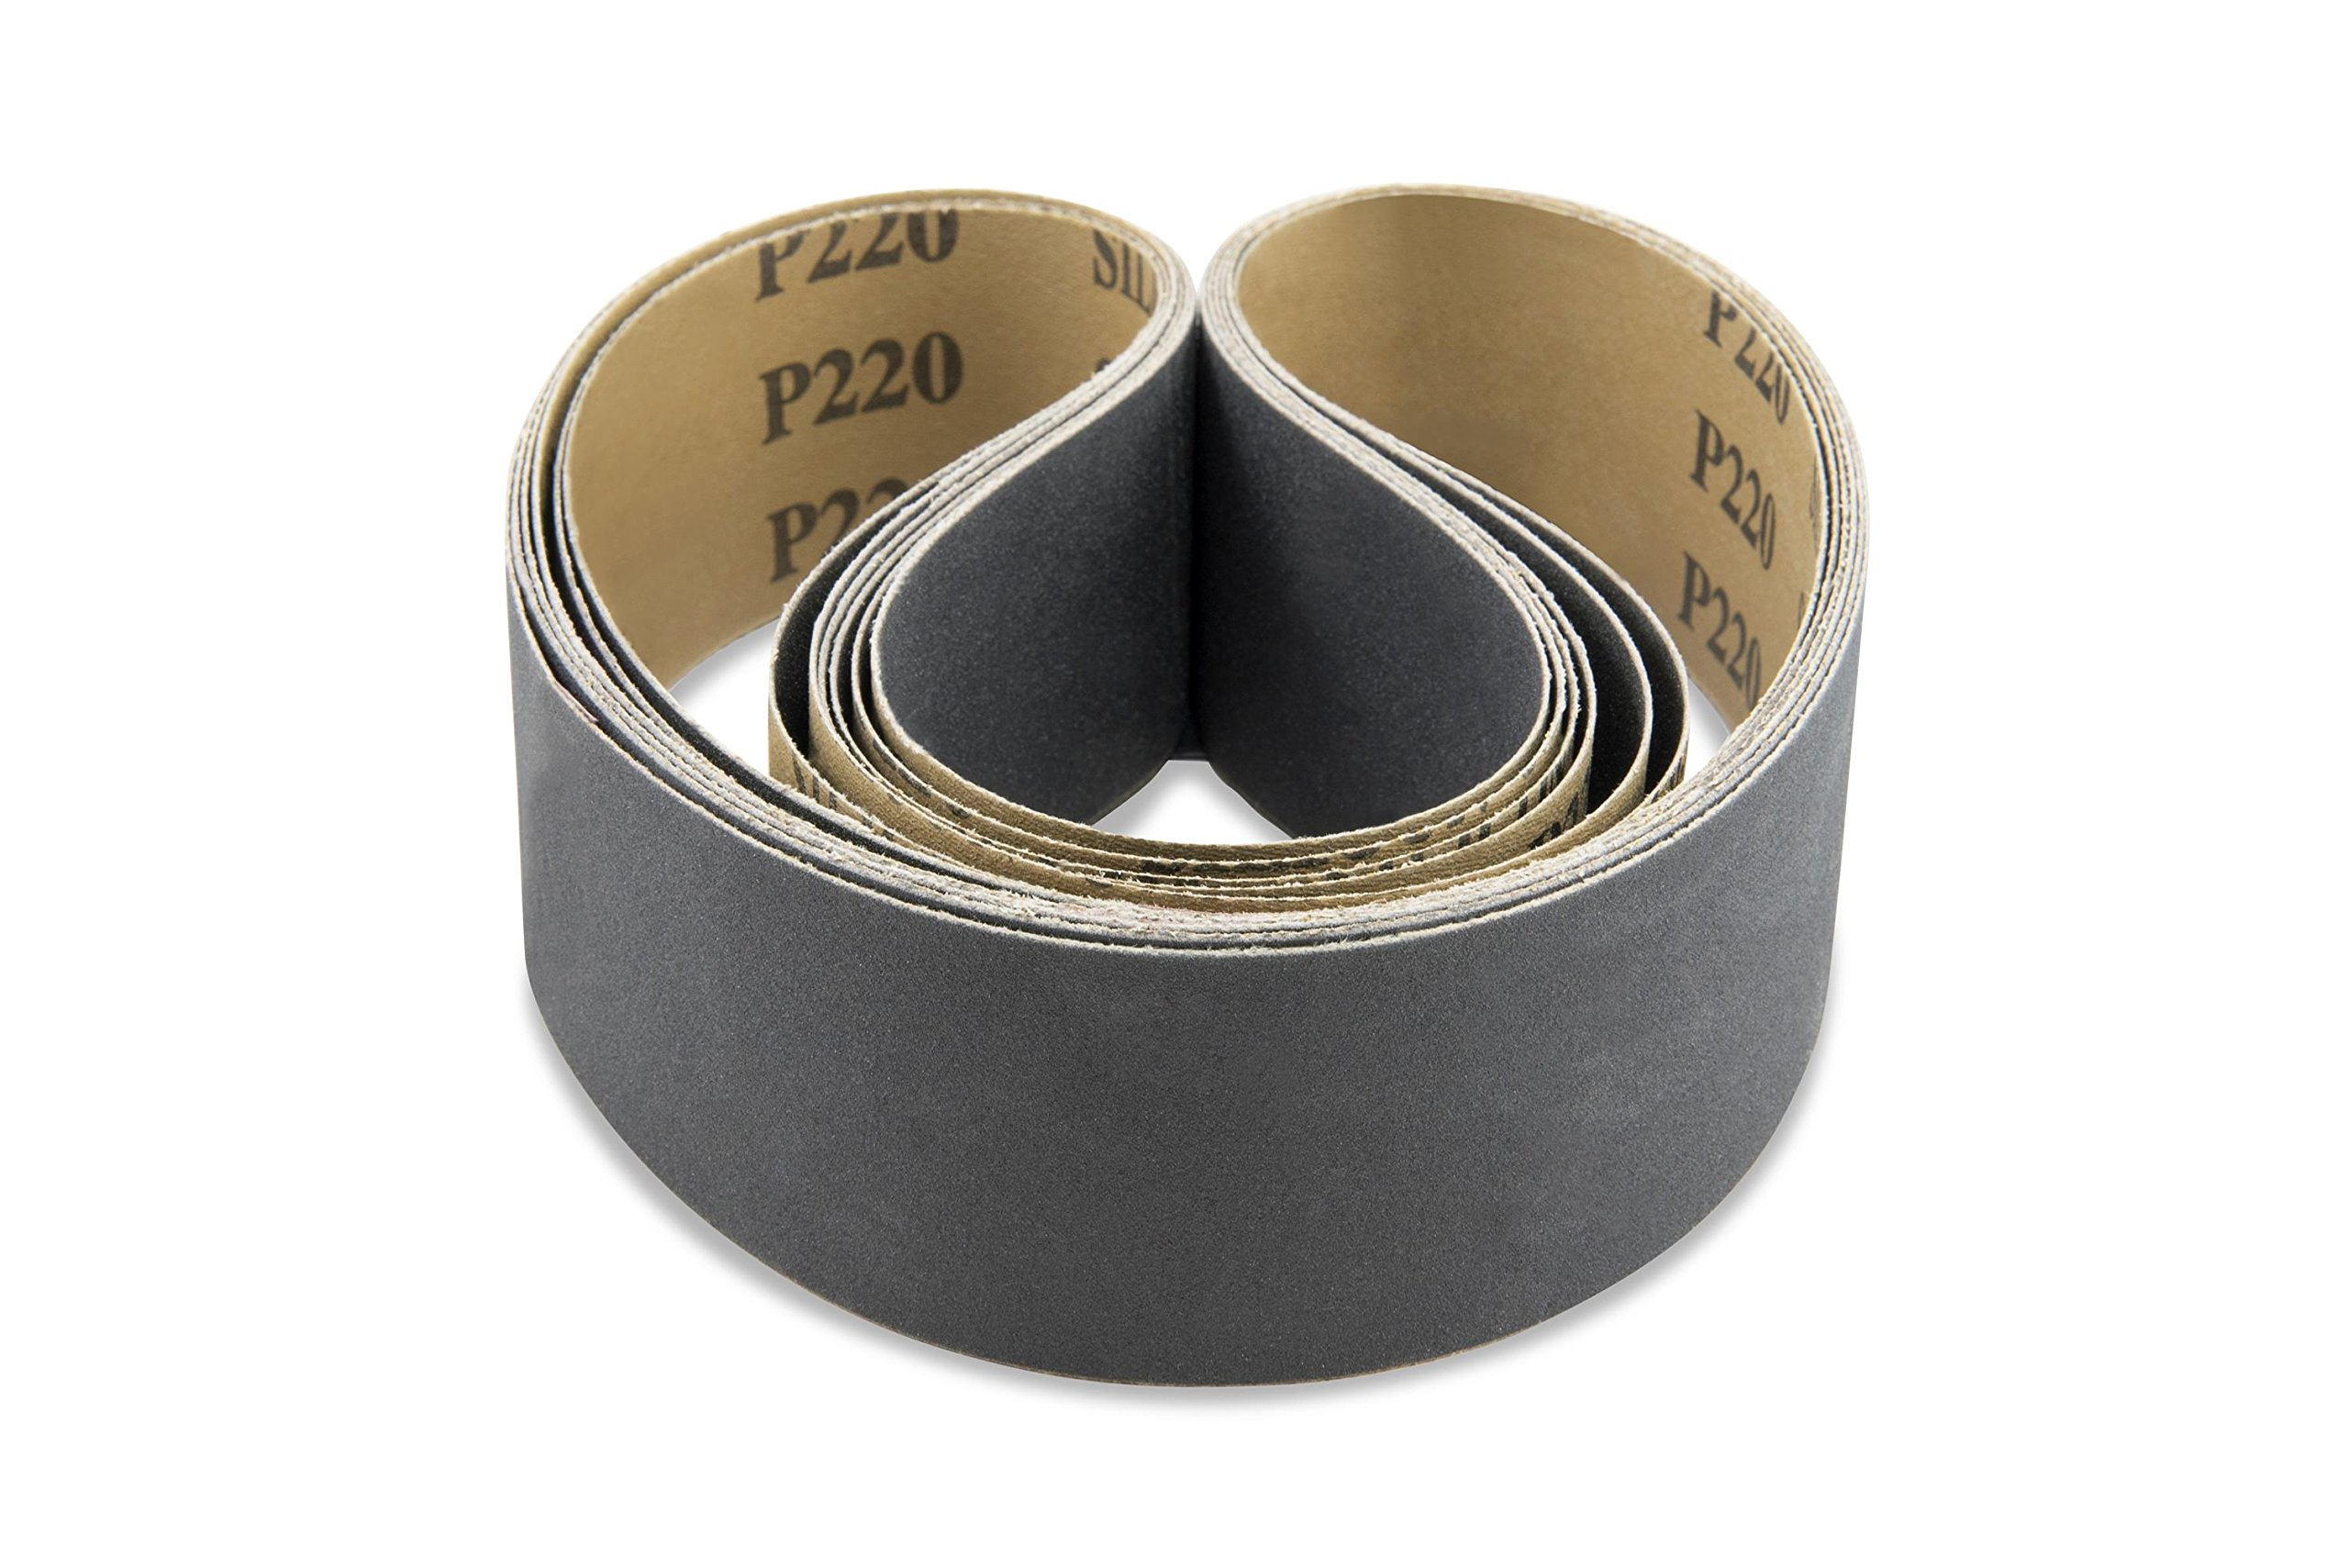 2 X 36 Inch 80 Grit Silicon Carbide Sanding Belts 6 Pack